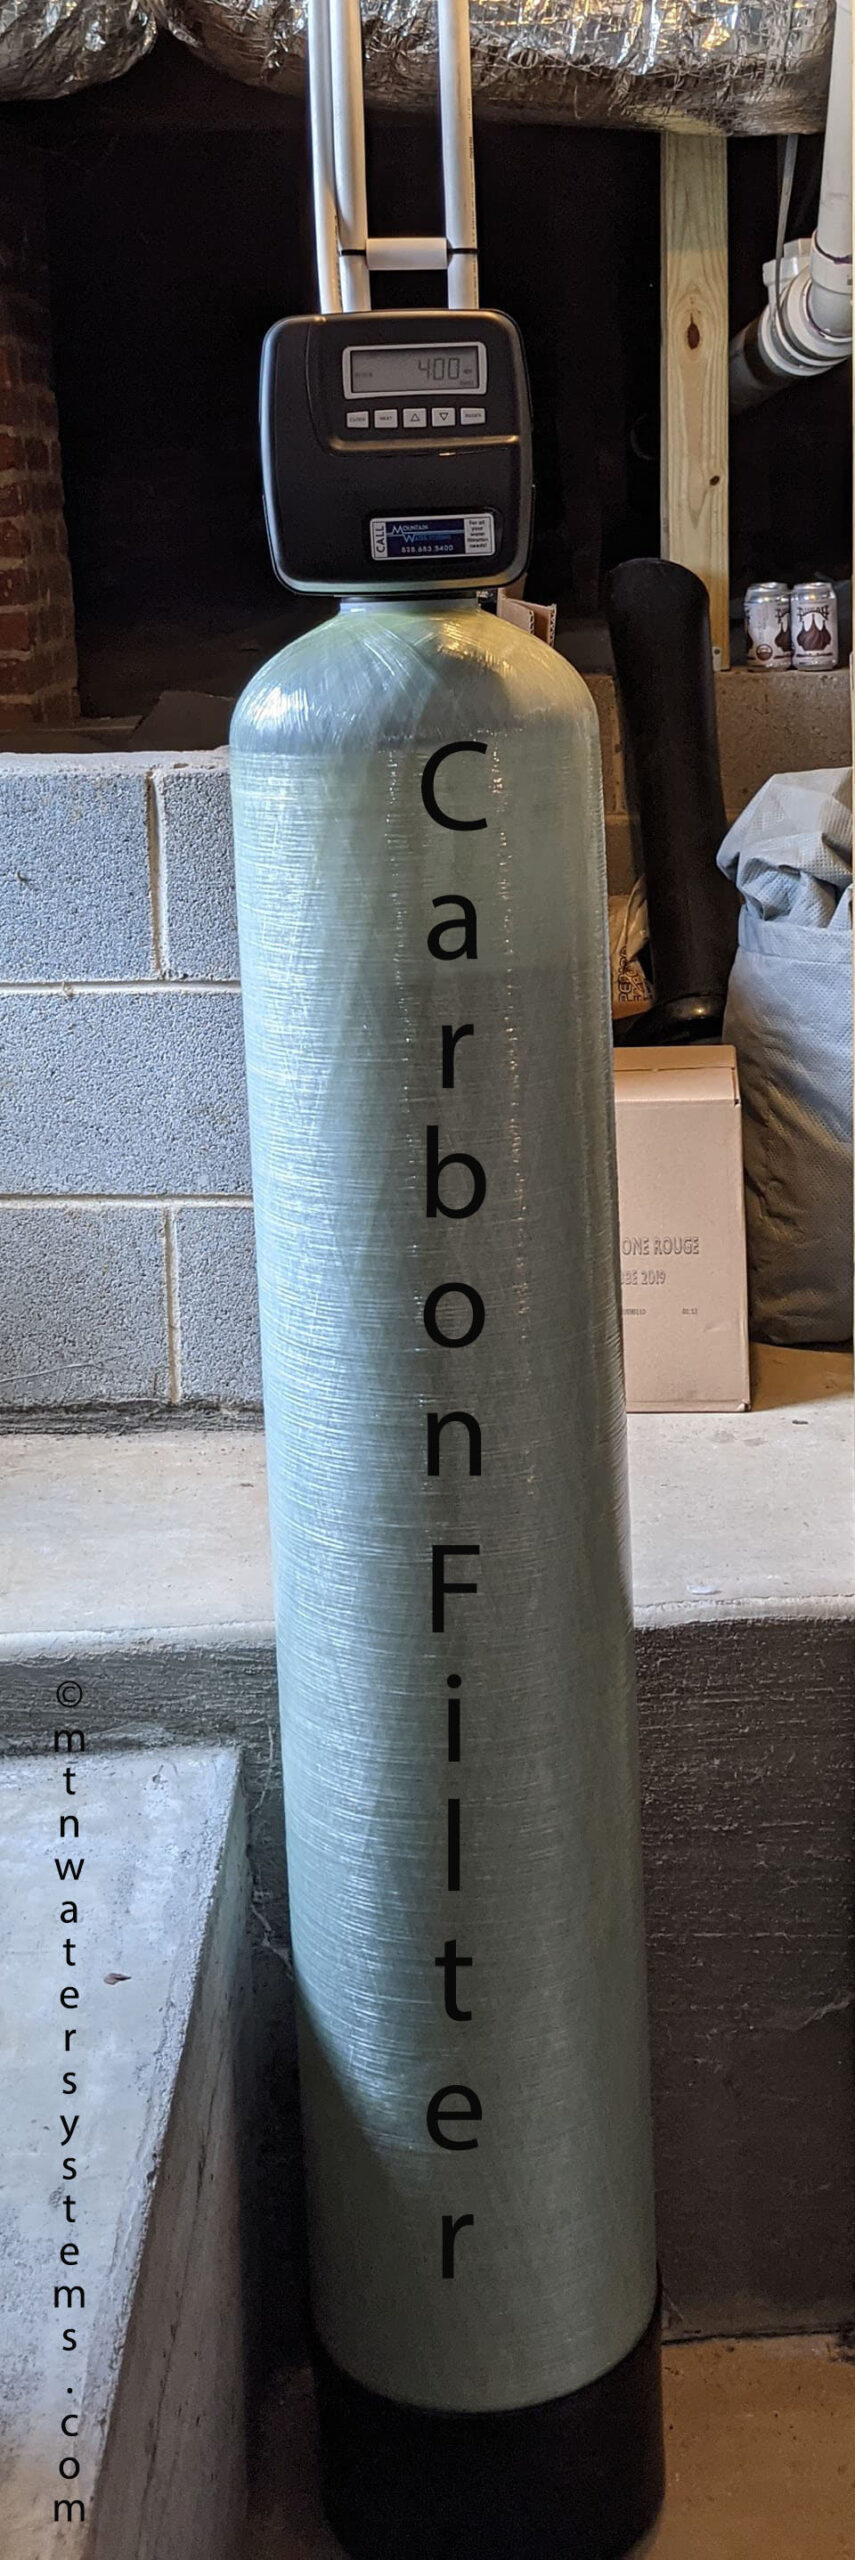 Asheville customer gets a carbon filter installed from Mountain Water Systems to remove that smelly chlorine taste and feel. Perfect Asheville city water now!